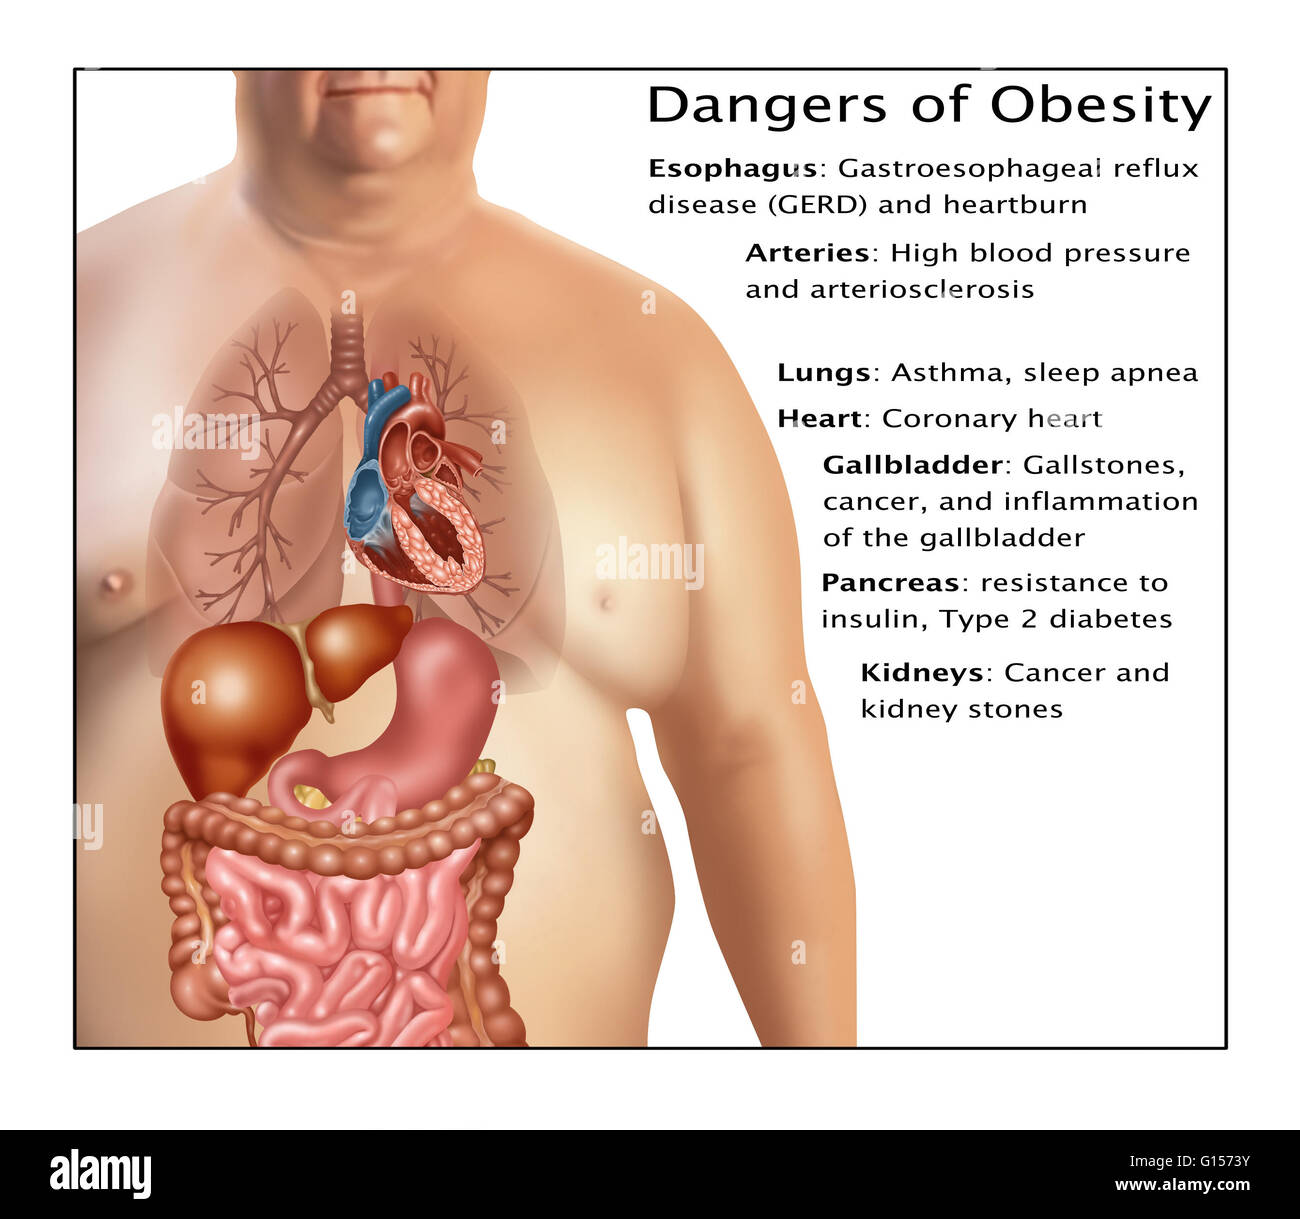 Dangers Of Obesity Some Of The Dangers Of Being Obese Include Stock Photo Alamy